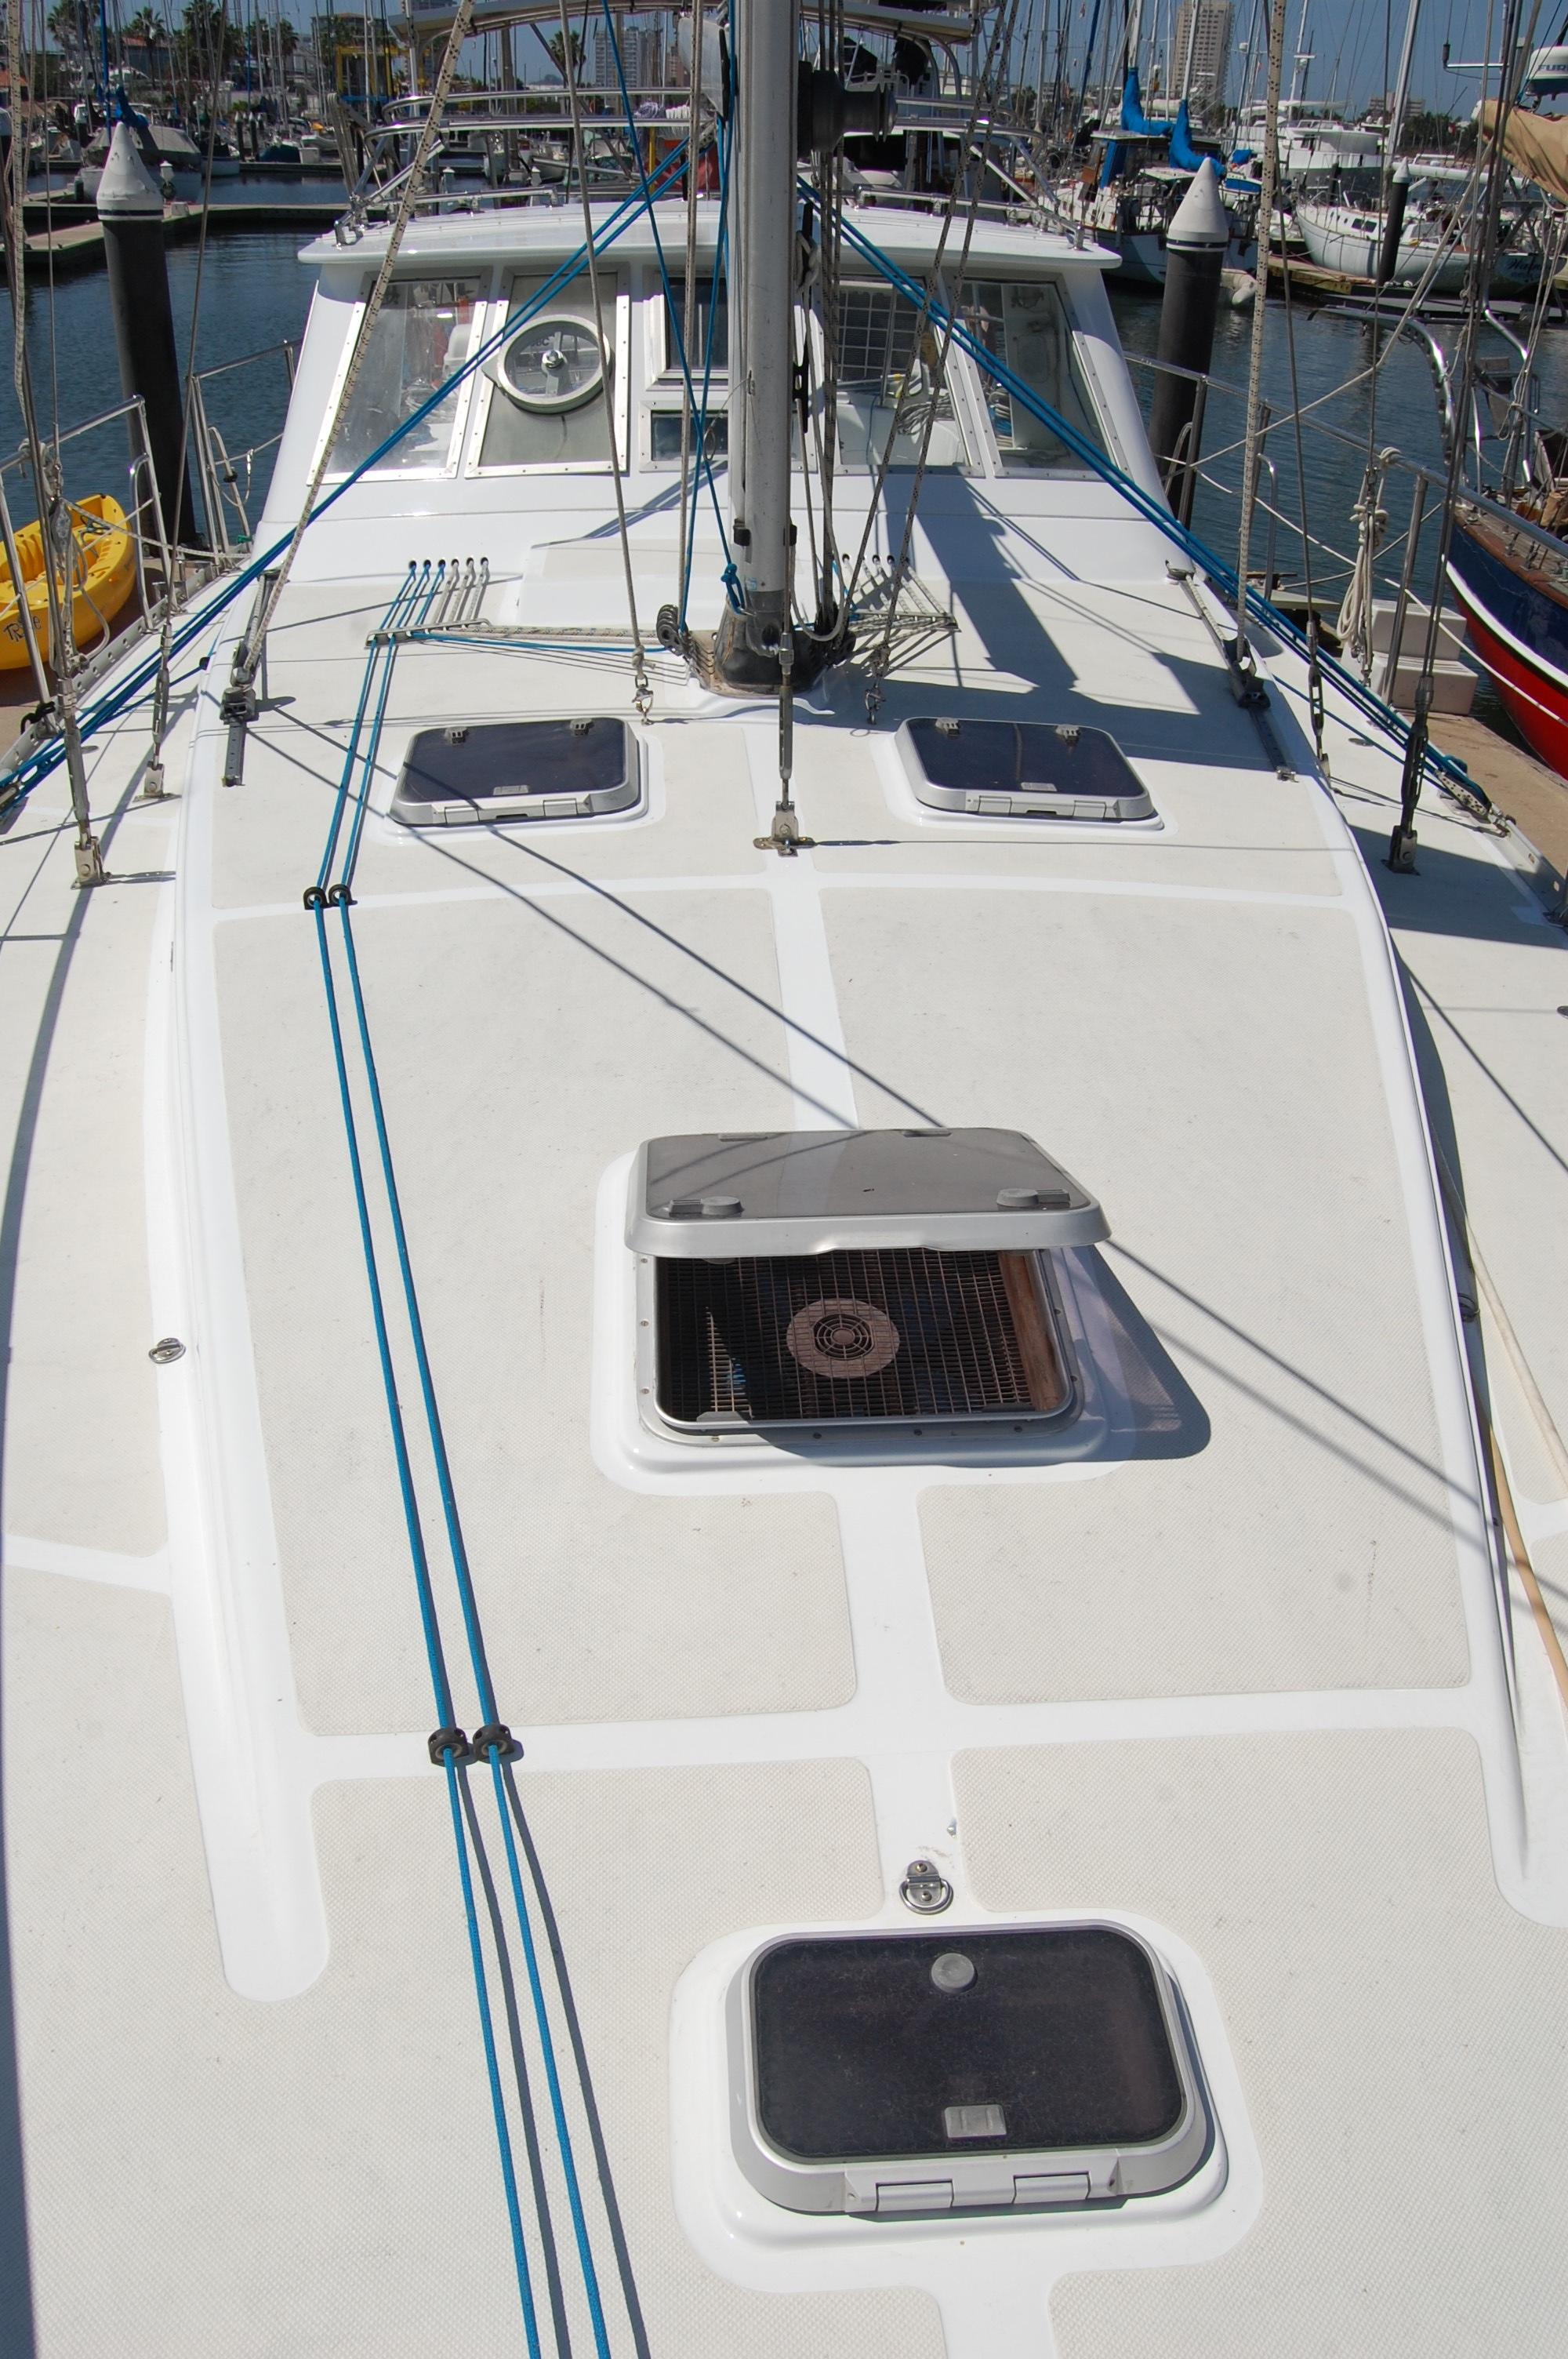 46' Maple Leaf Queen Cutter+Photo 63